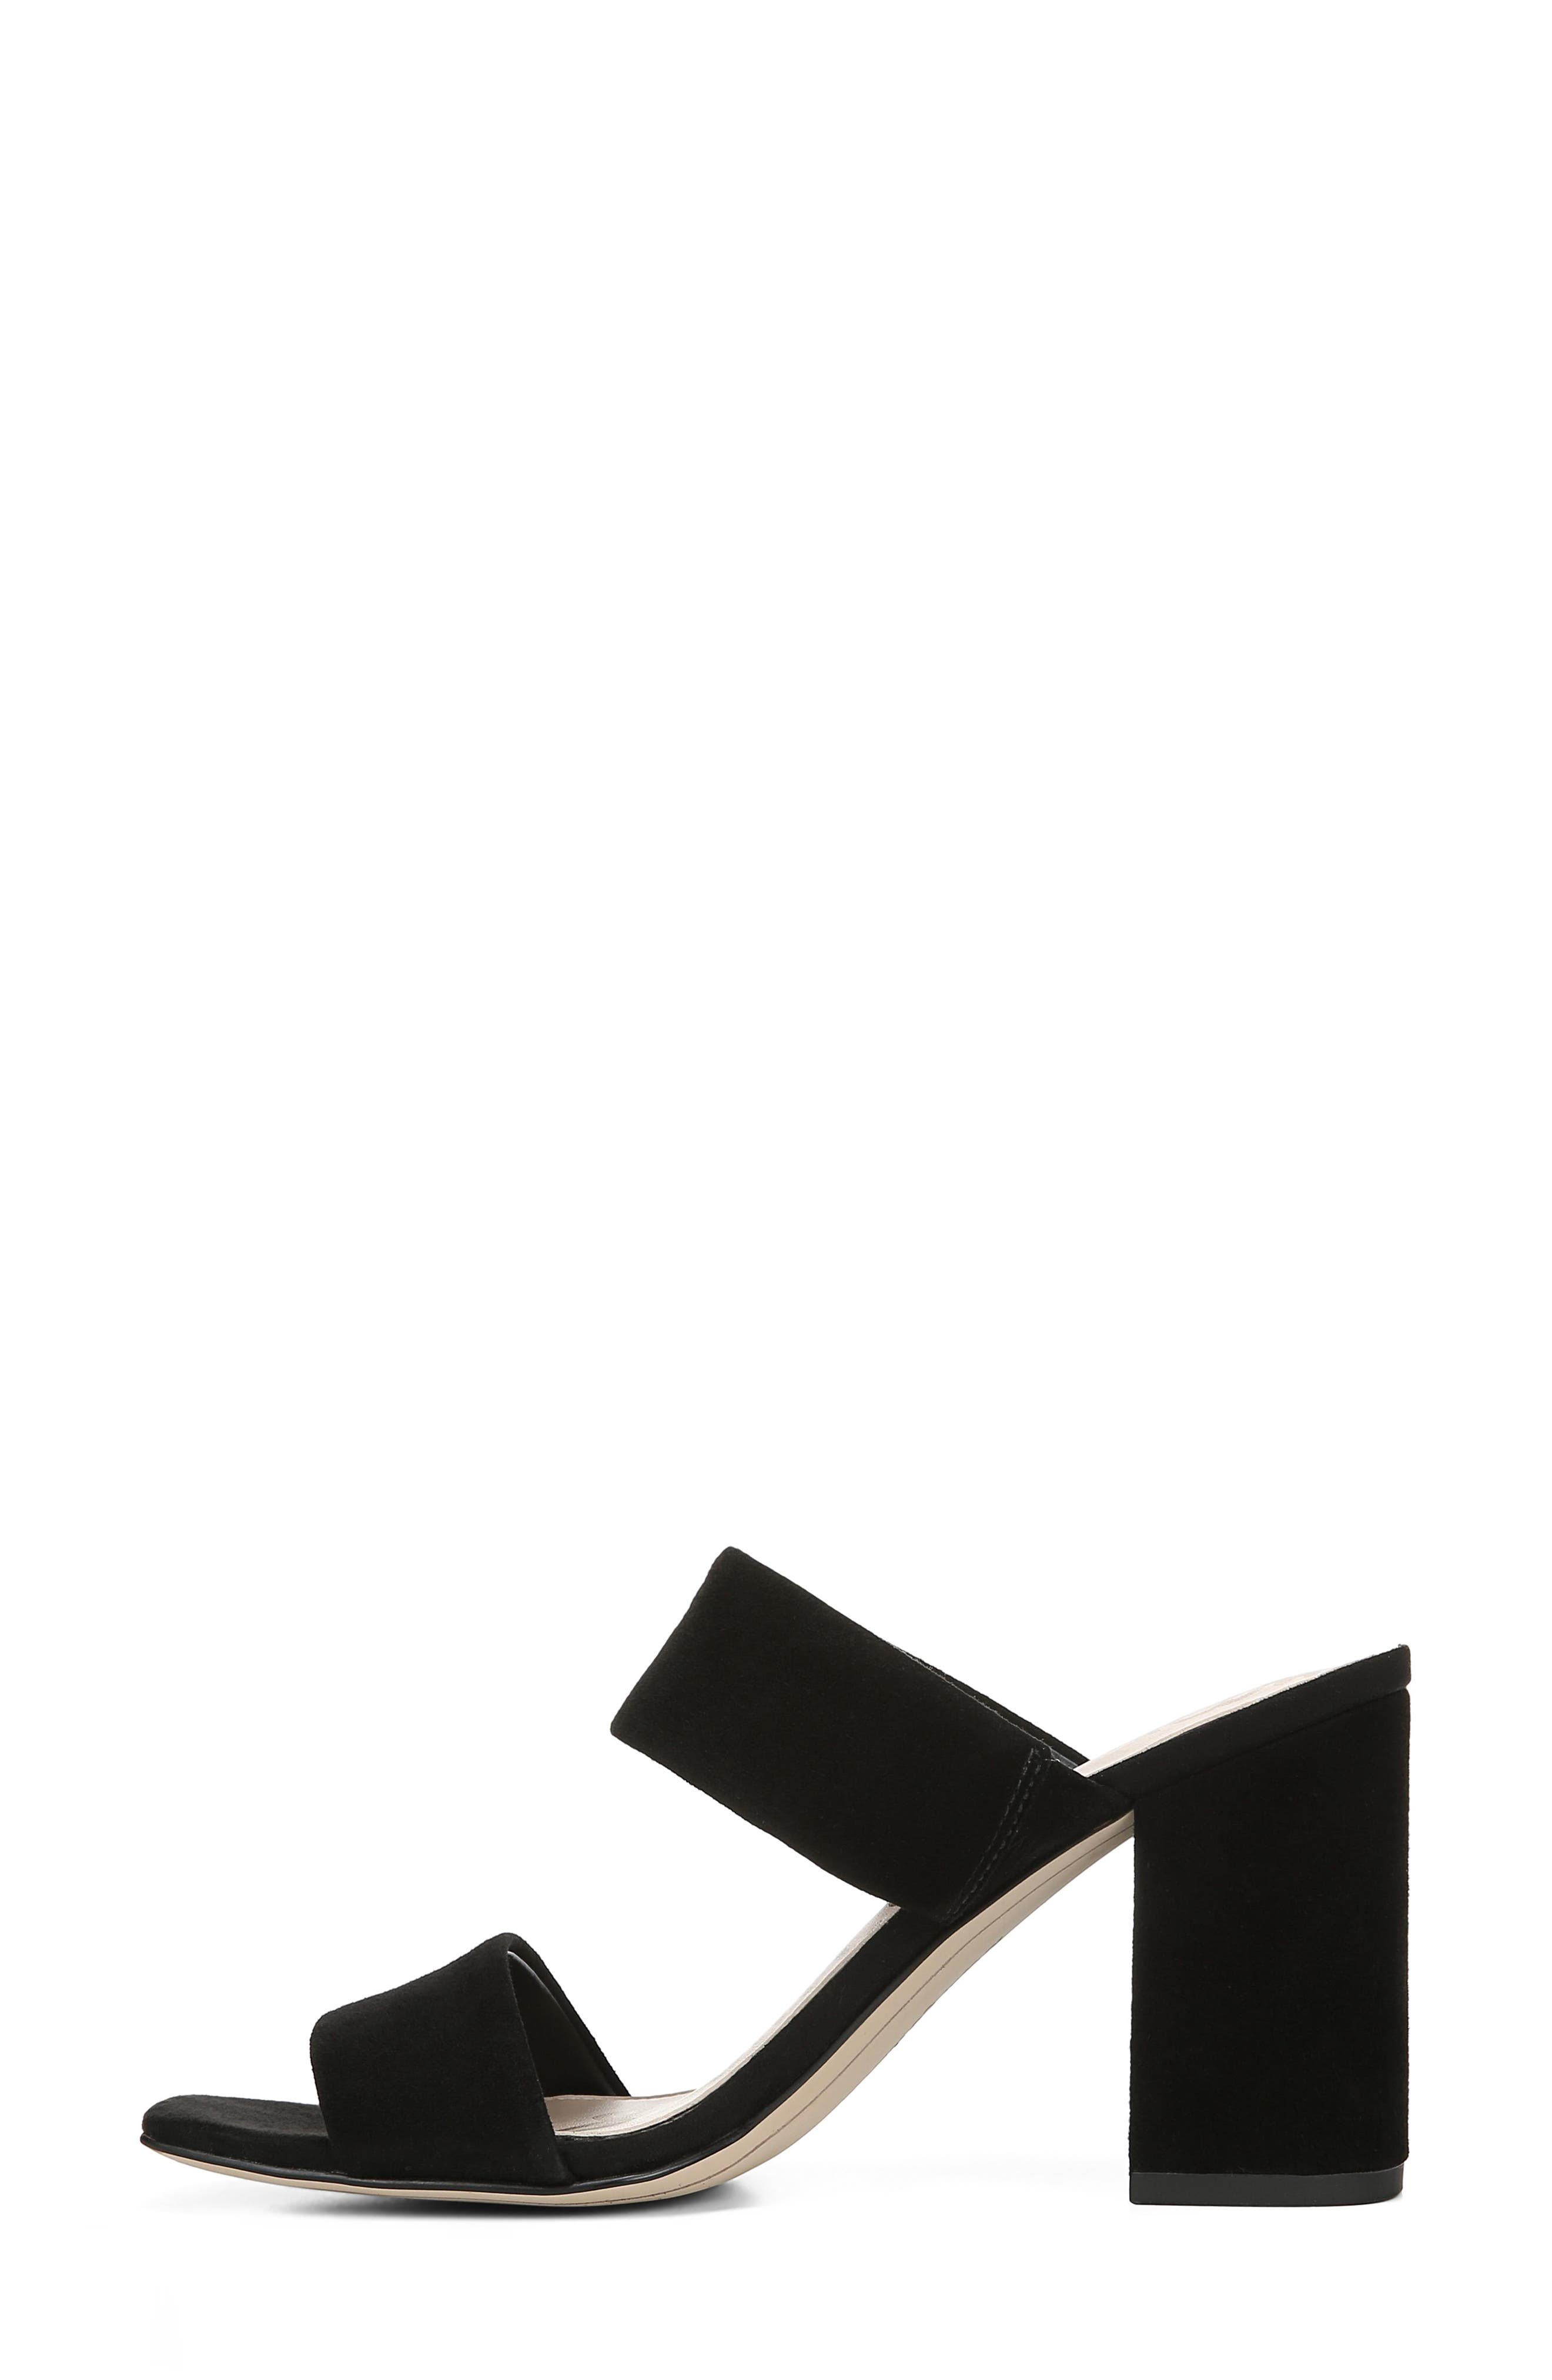 SAM EDELMAN, Delaney Sandal, Alternate thumbnail 7, color, BLACK SUEDE